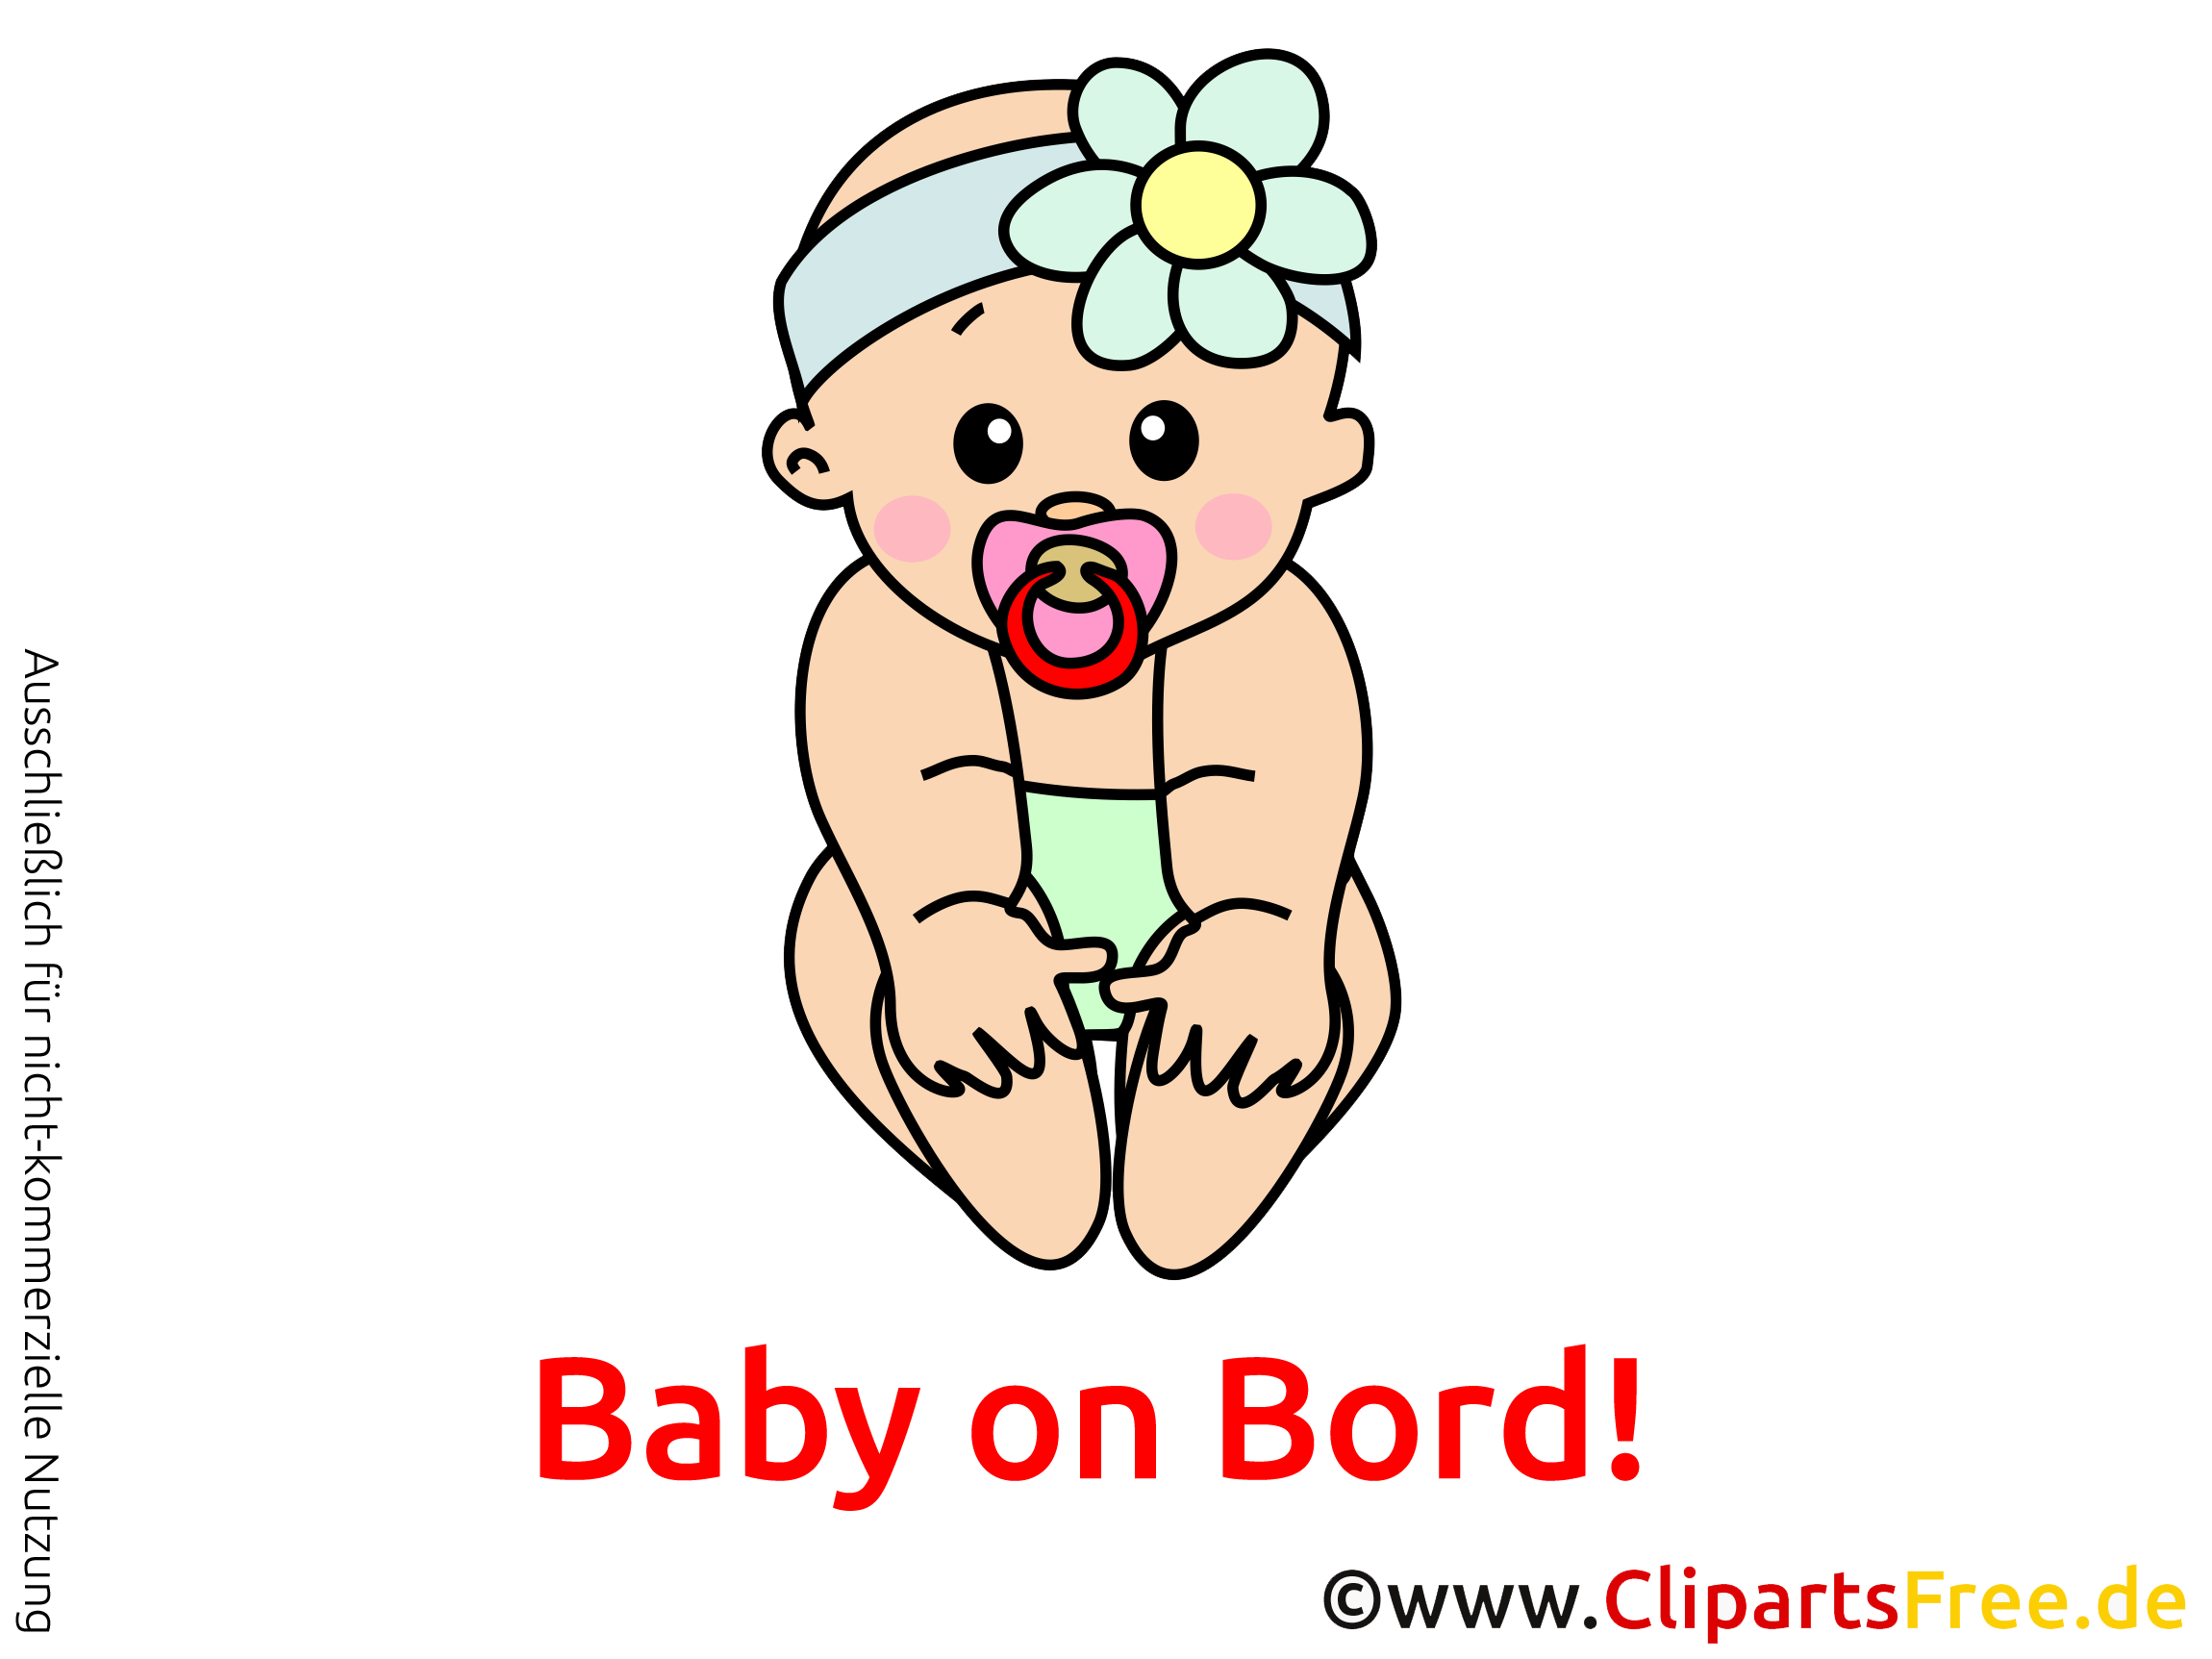 clipart baby on board - photo #38